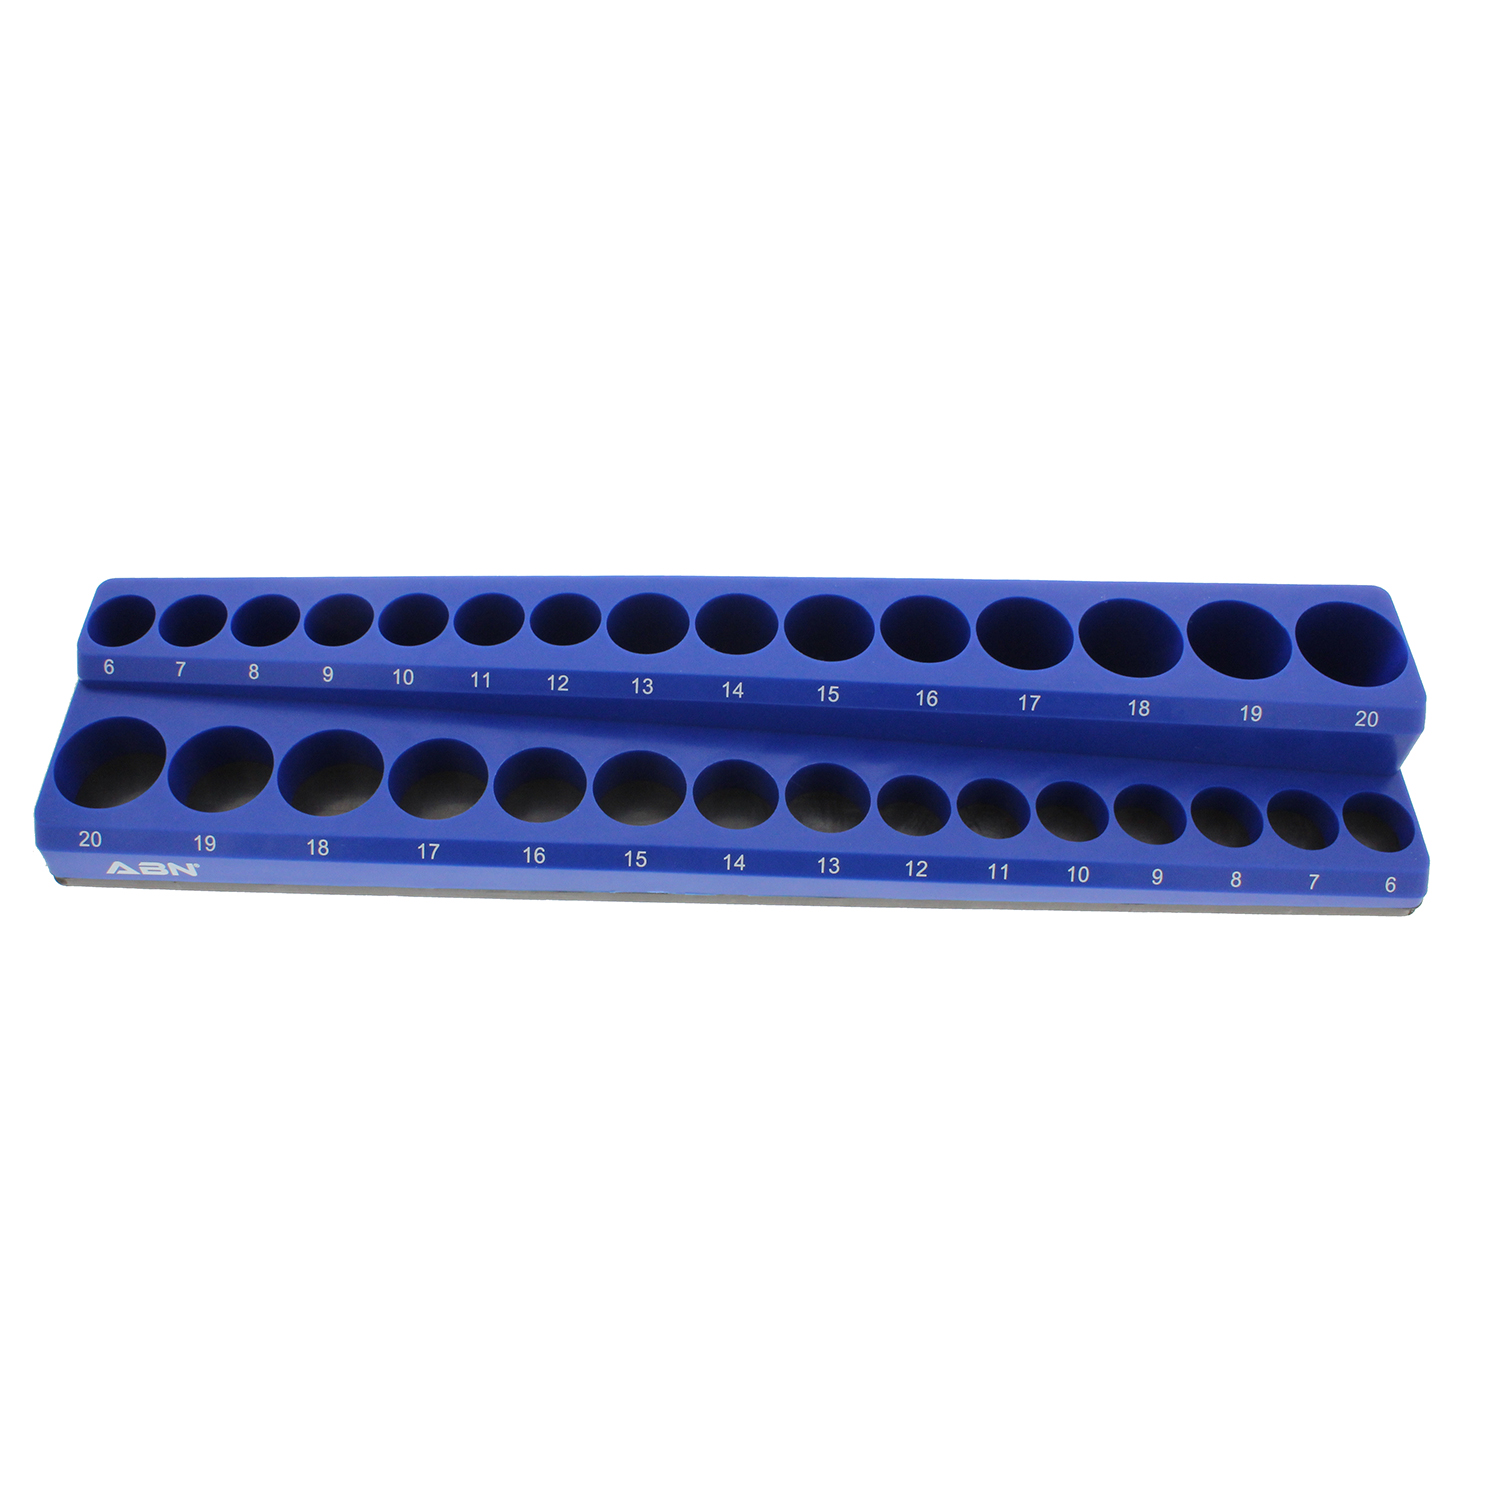 Abn Magnetic Bit Socket Organizer Wall Or Bench Tray